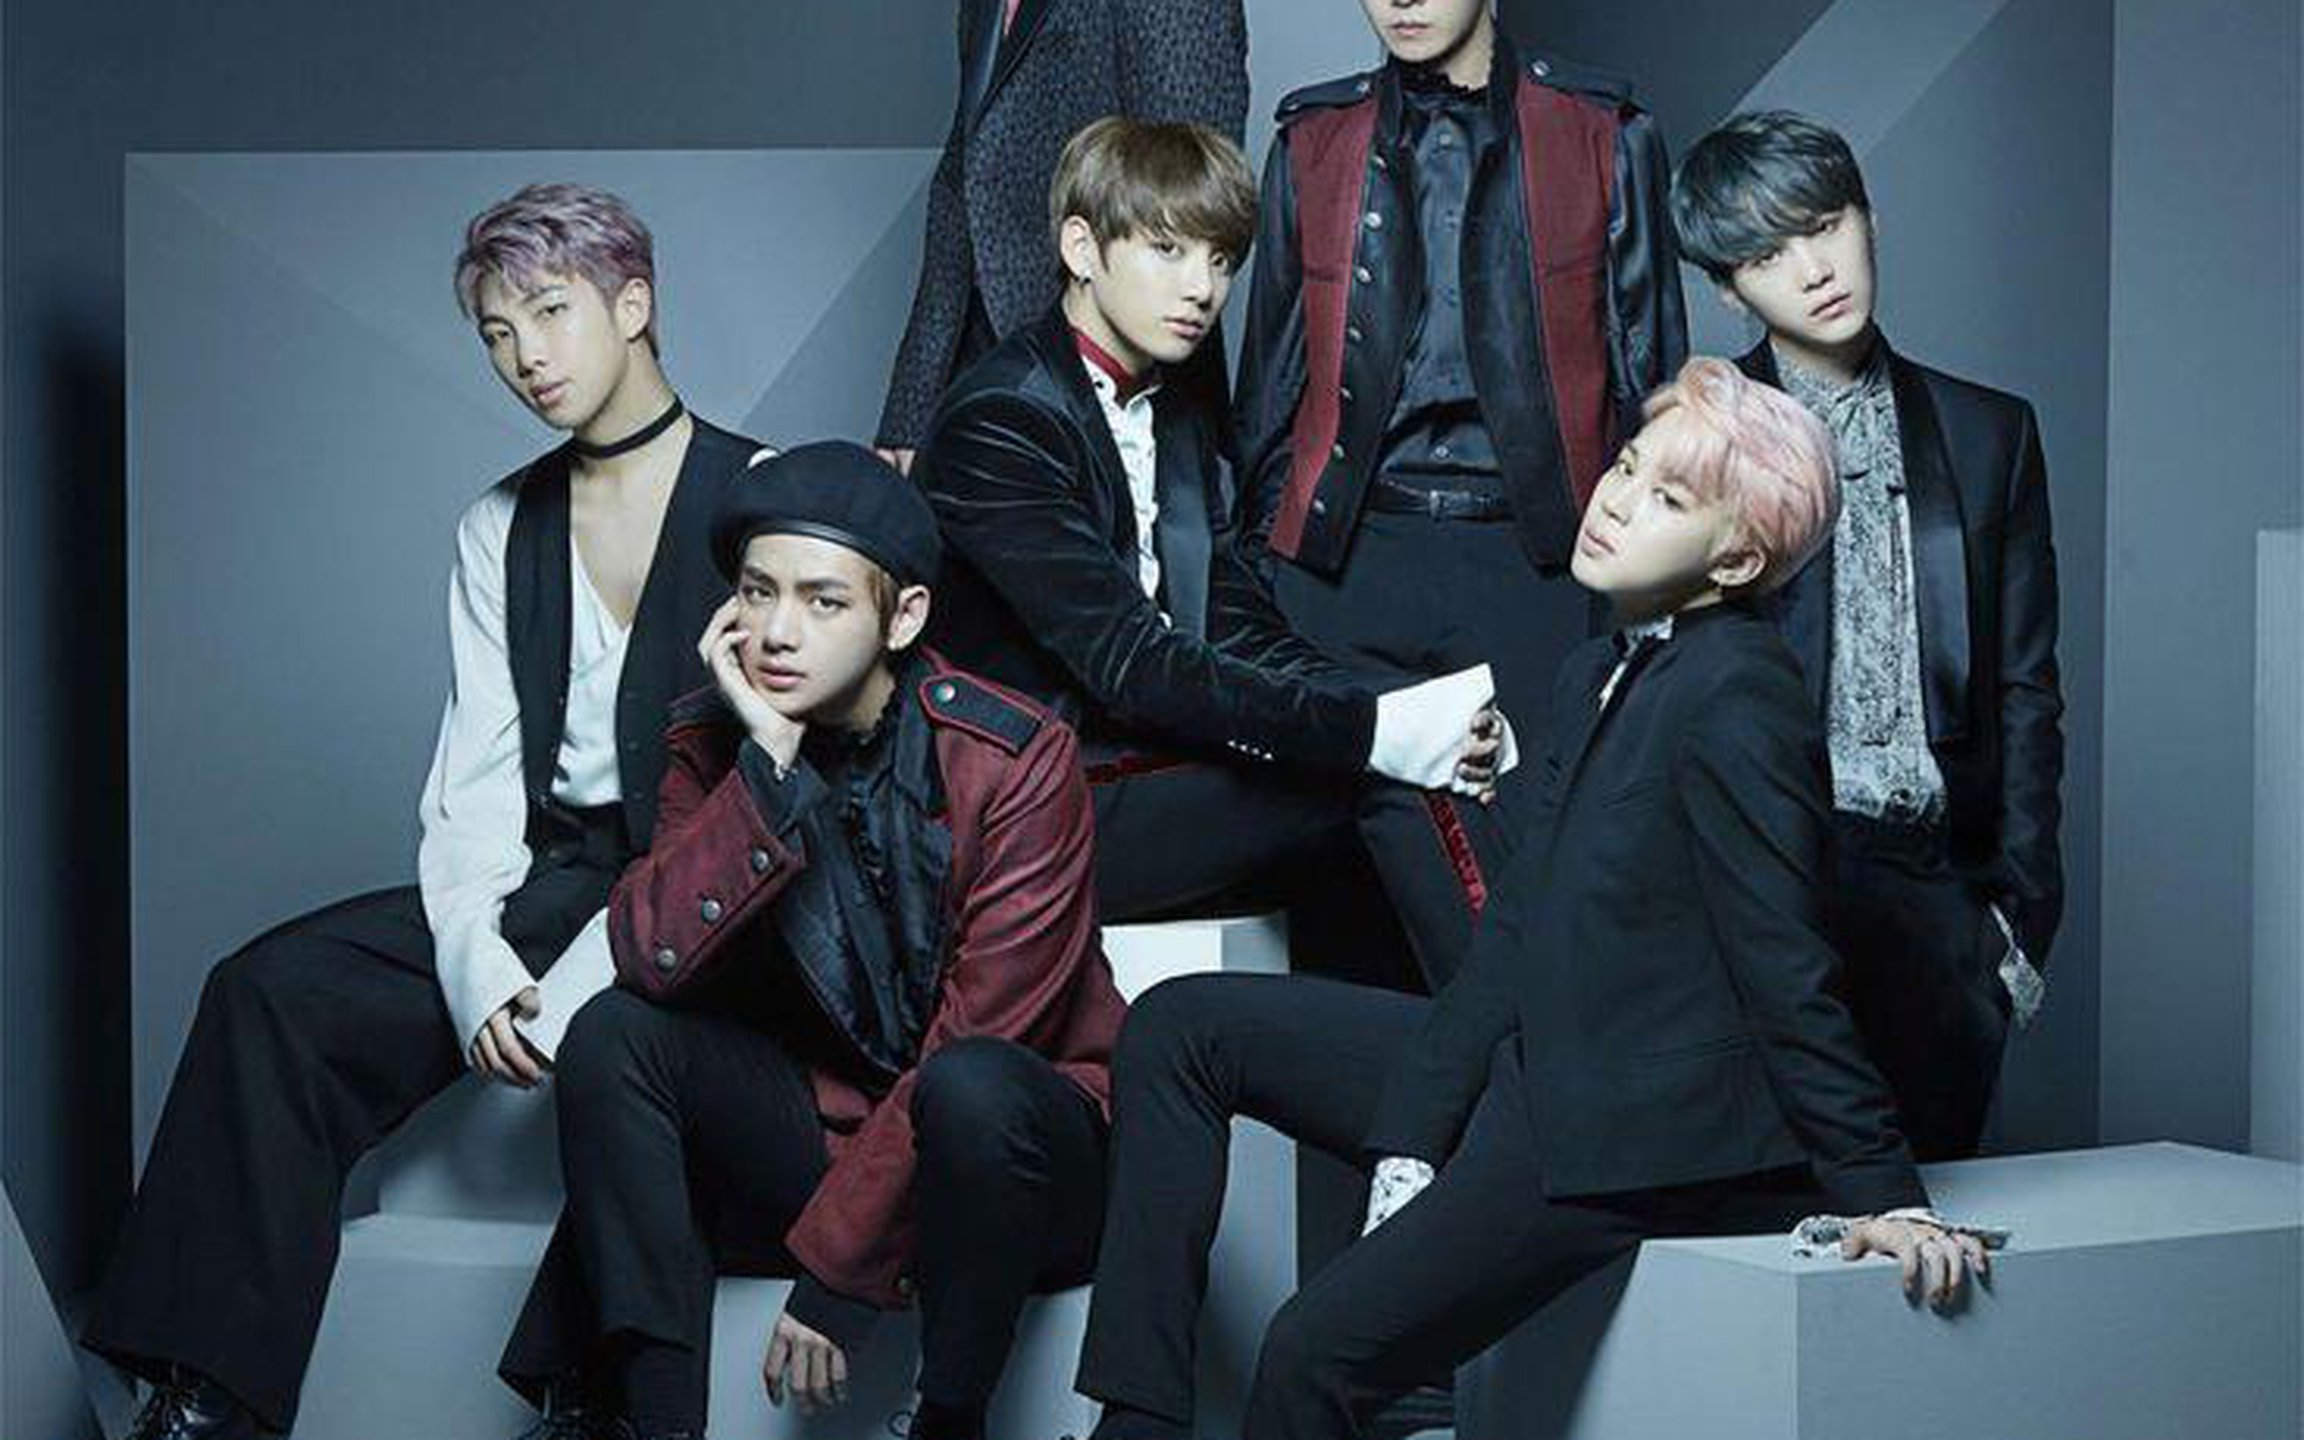 Bts Phone Wallpaper Photoshoot Blood Sweat and Tears Bts, Hd